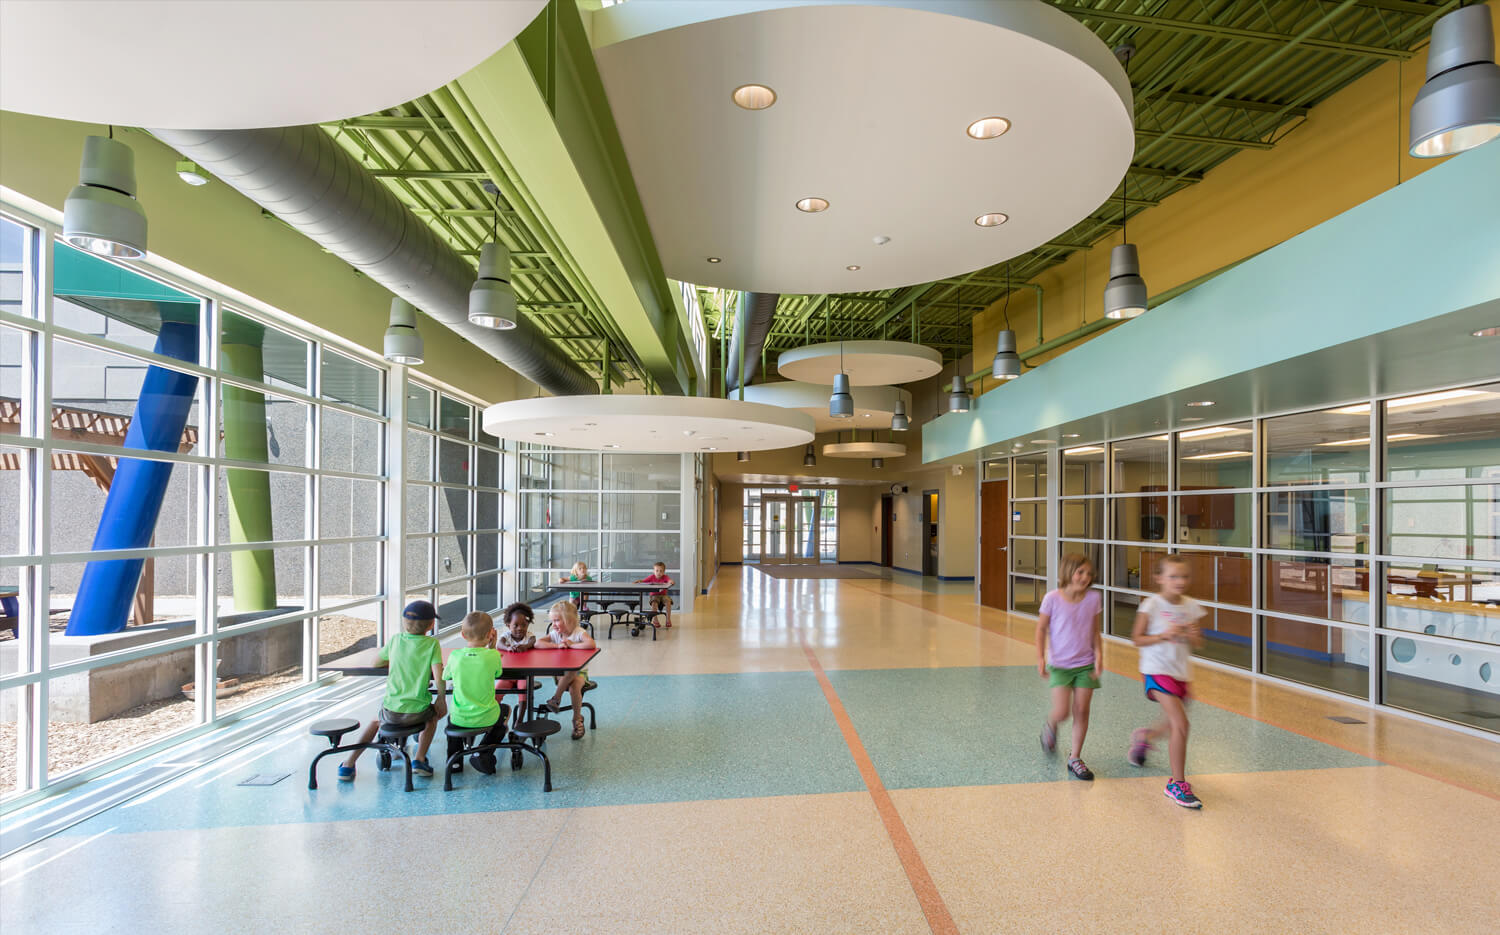 cmba-architects-portfolio-preschool-learning-center